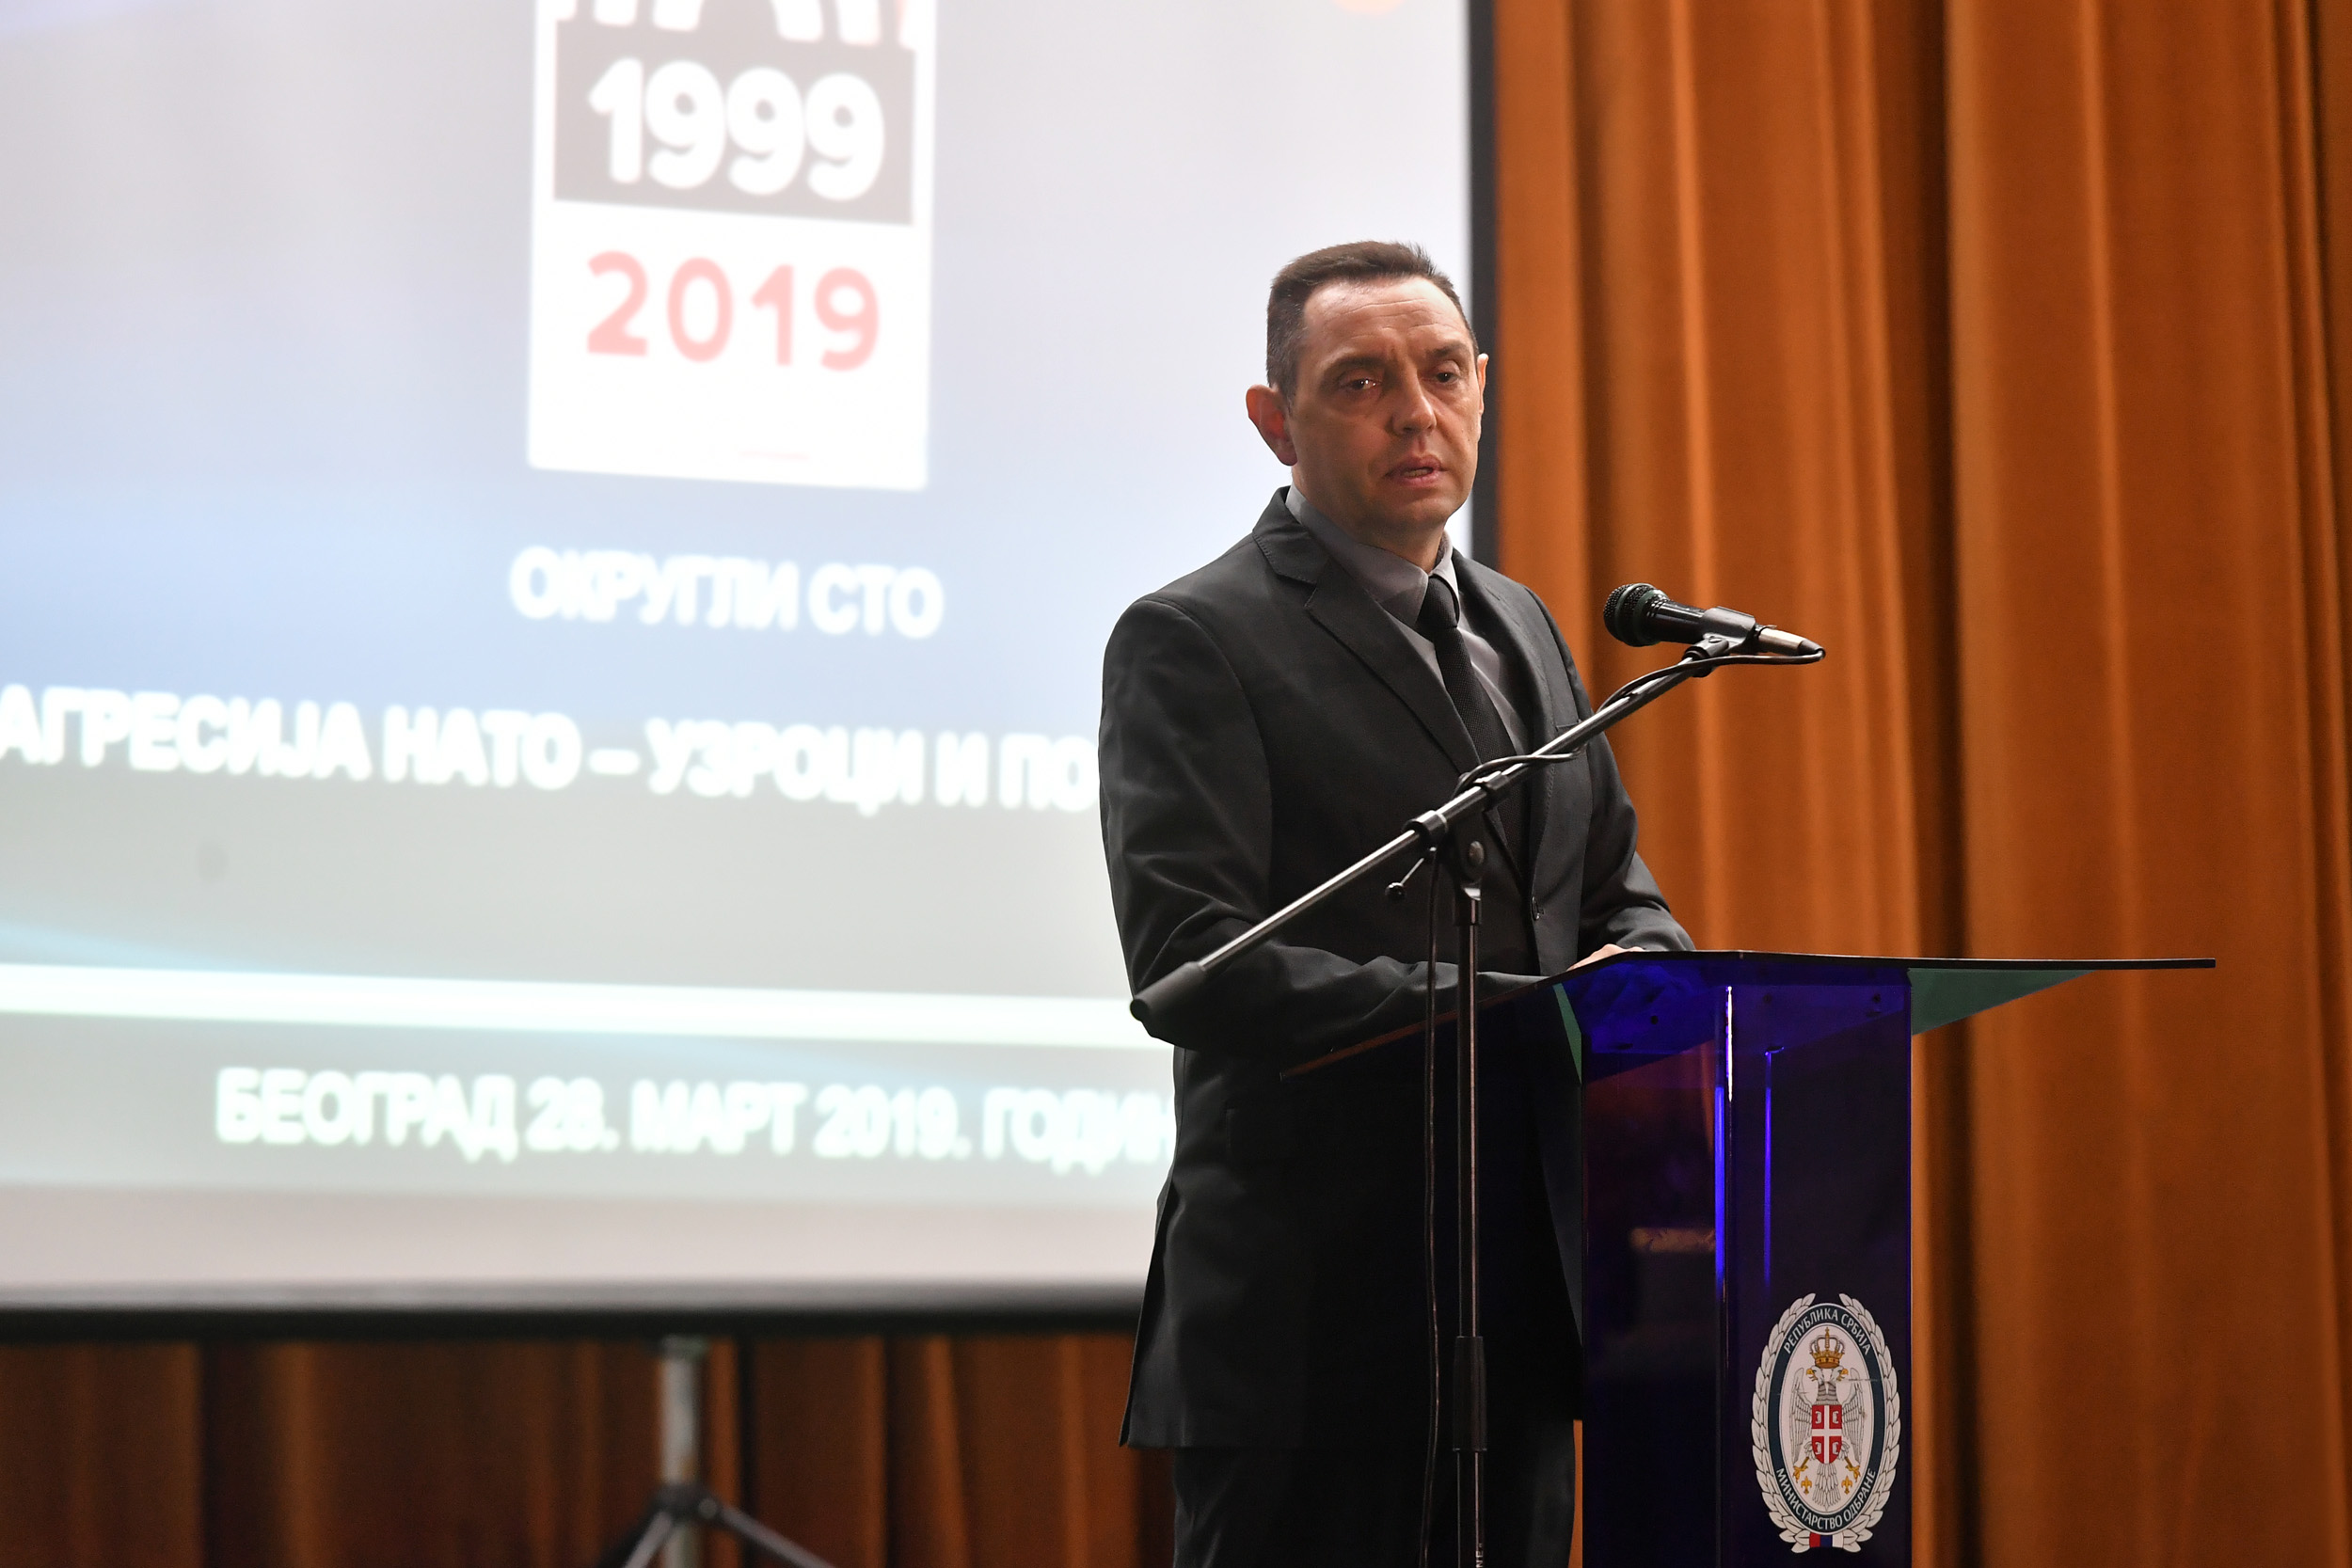 Minister Vulin: In 1999, they tried to kill Serbia, but